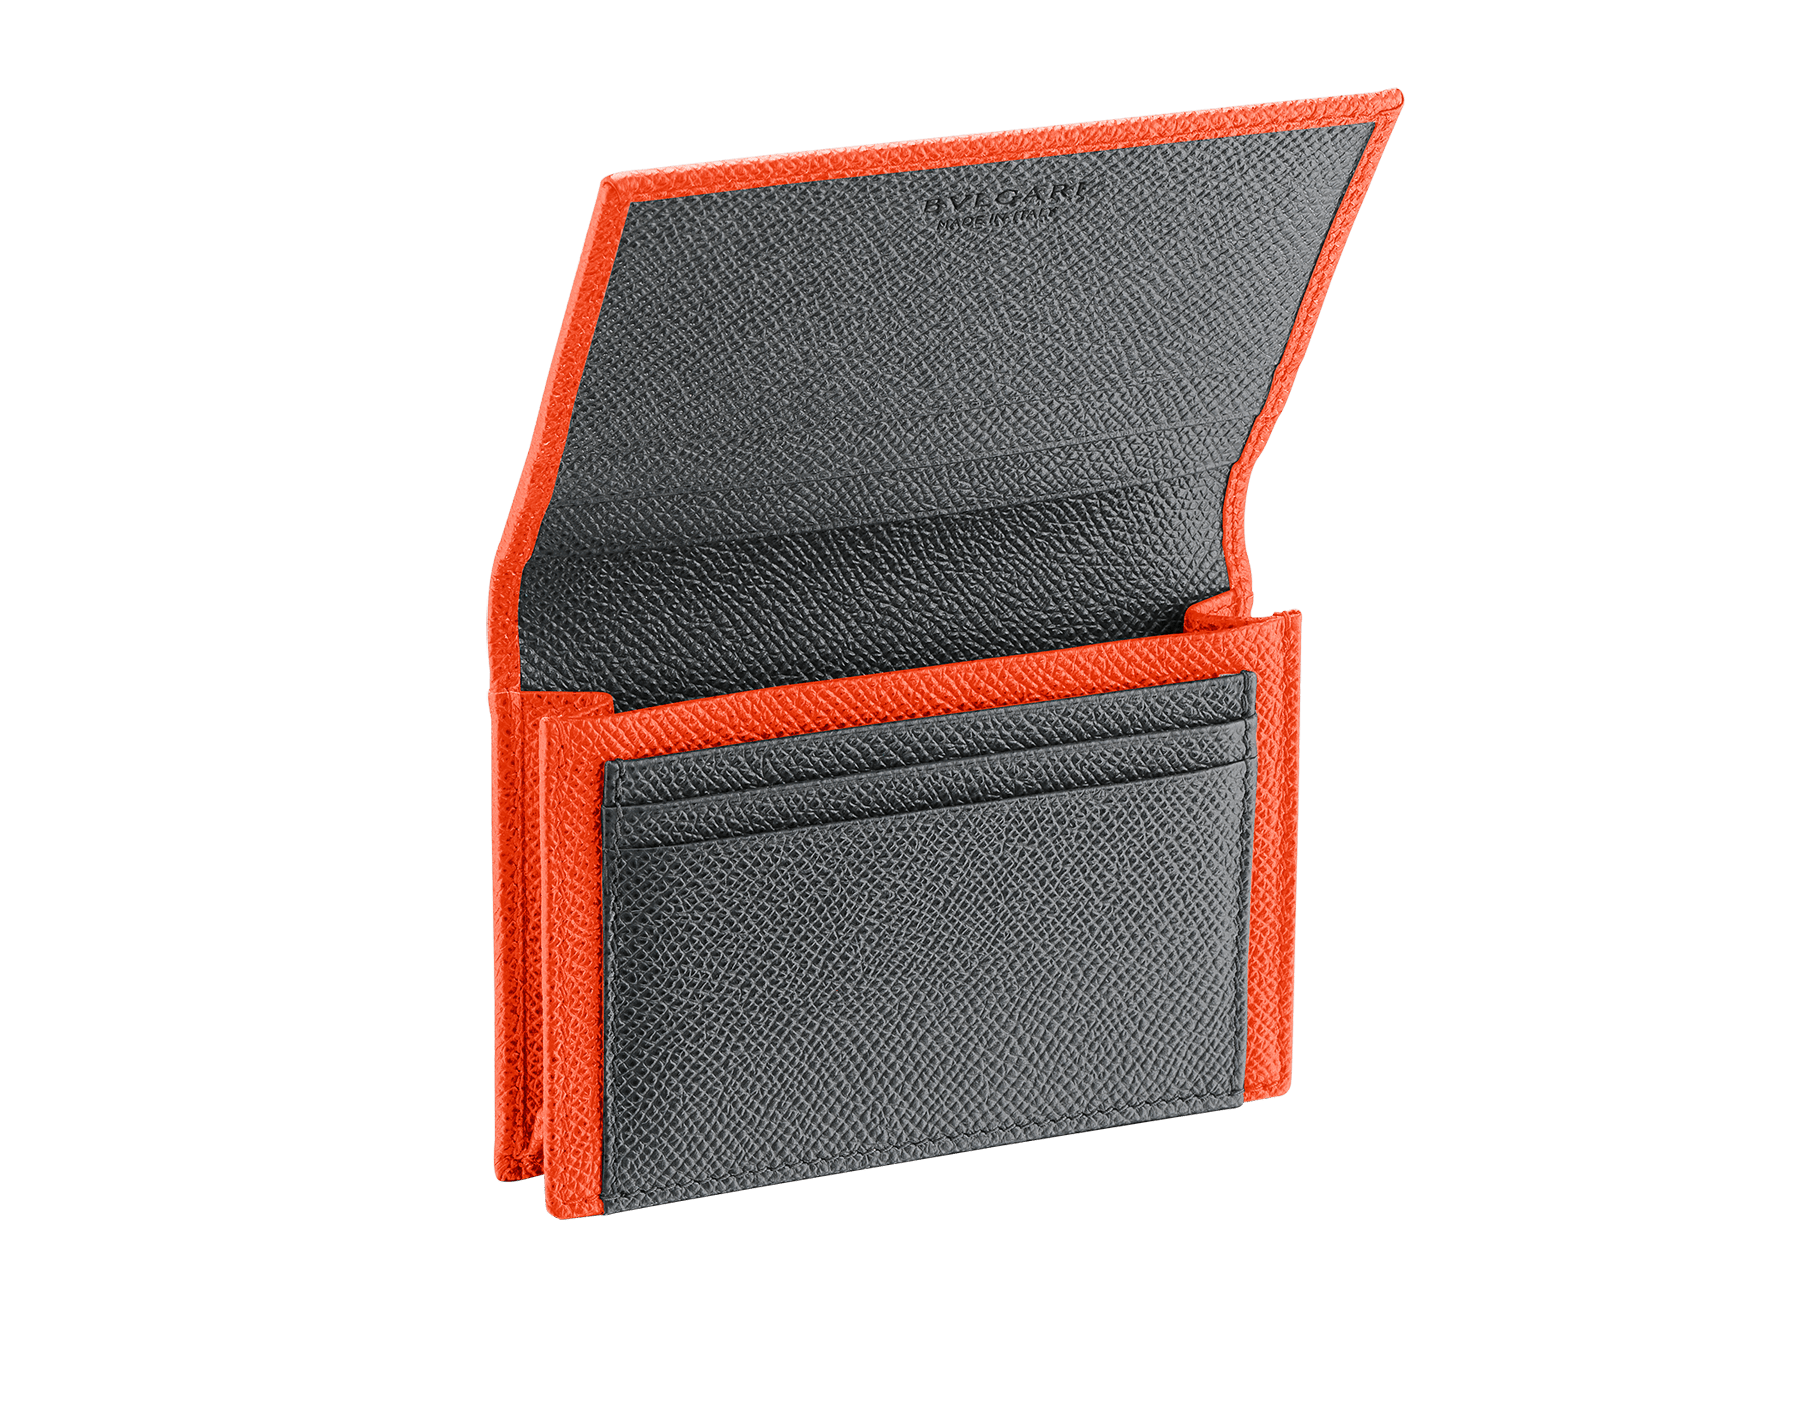 BVLGARI BVLGARI business card holder in fire amber and charcoal diamond grain calf leather, with brass palladium-plated logo décor. 289117 image 2